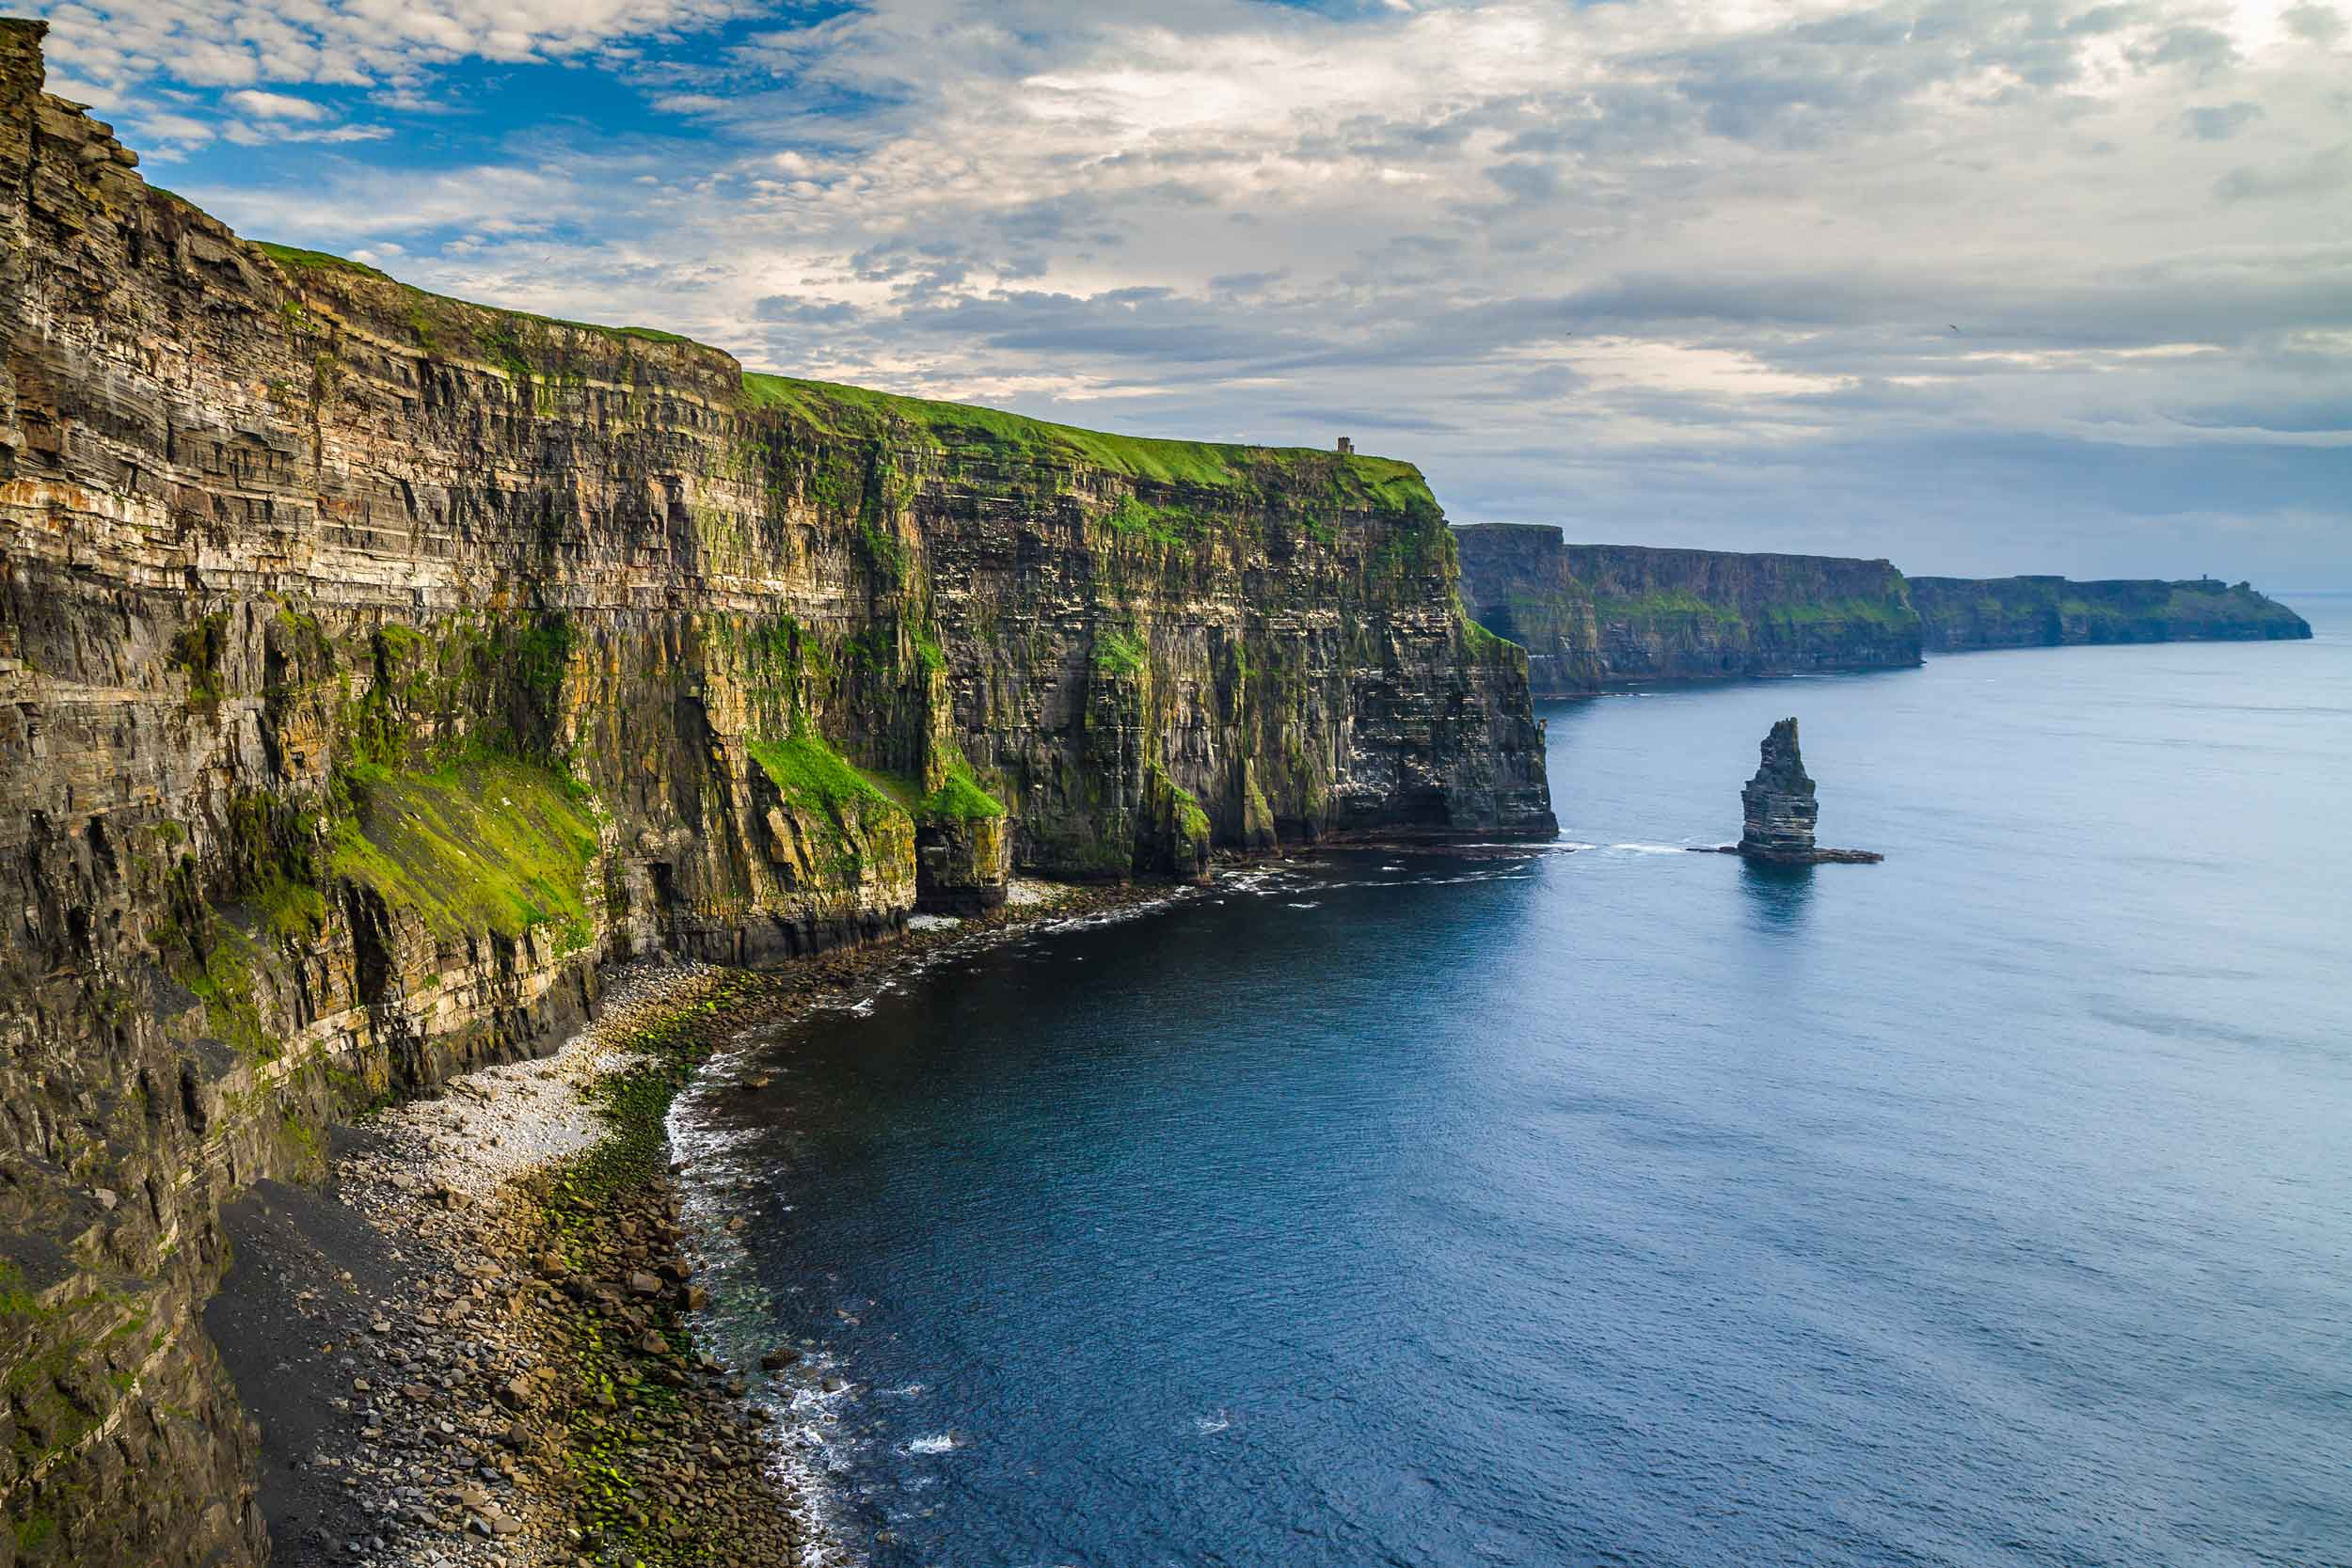 The rugged beauty of Ireland's western coastline is best seen from the famed Cliffs of Moher, a UNESCO Global Geopark and one of the natural wonders of Ireland's Wild Atlantic Way, the world's longest coastal touring route.